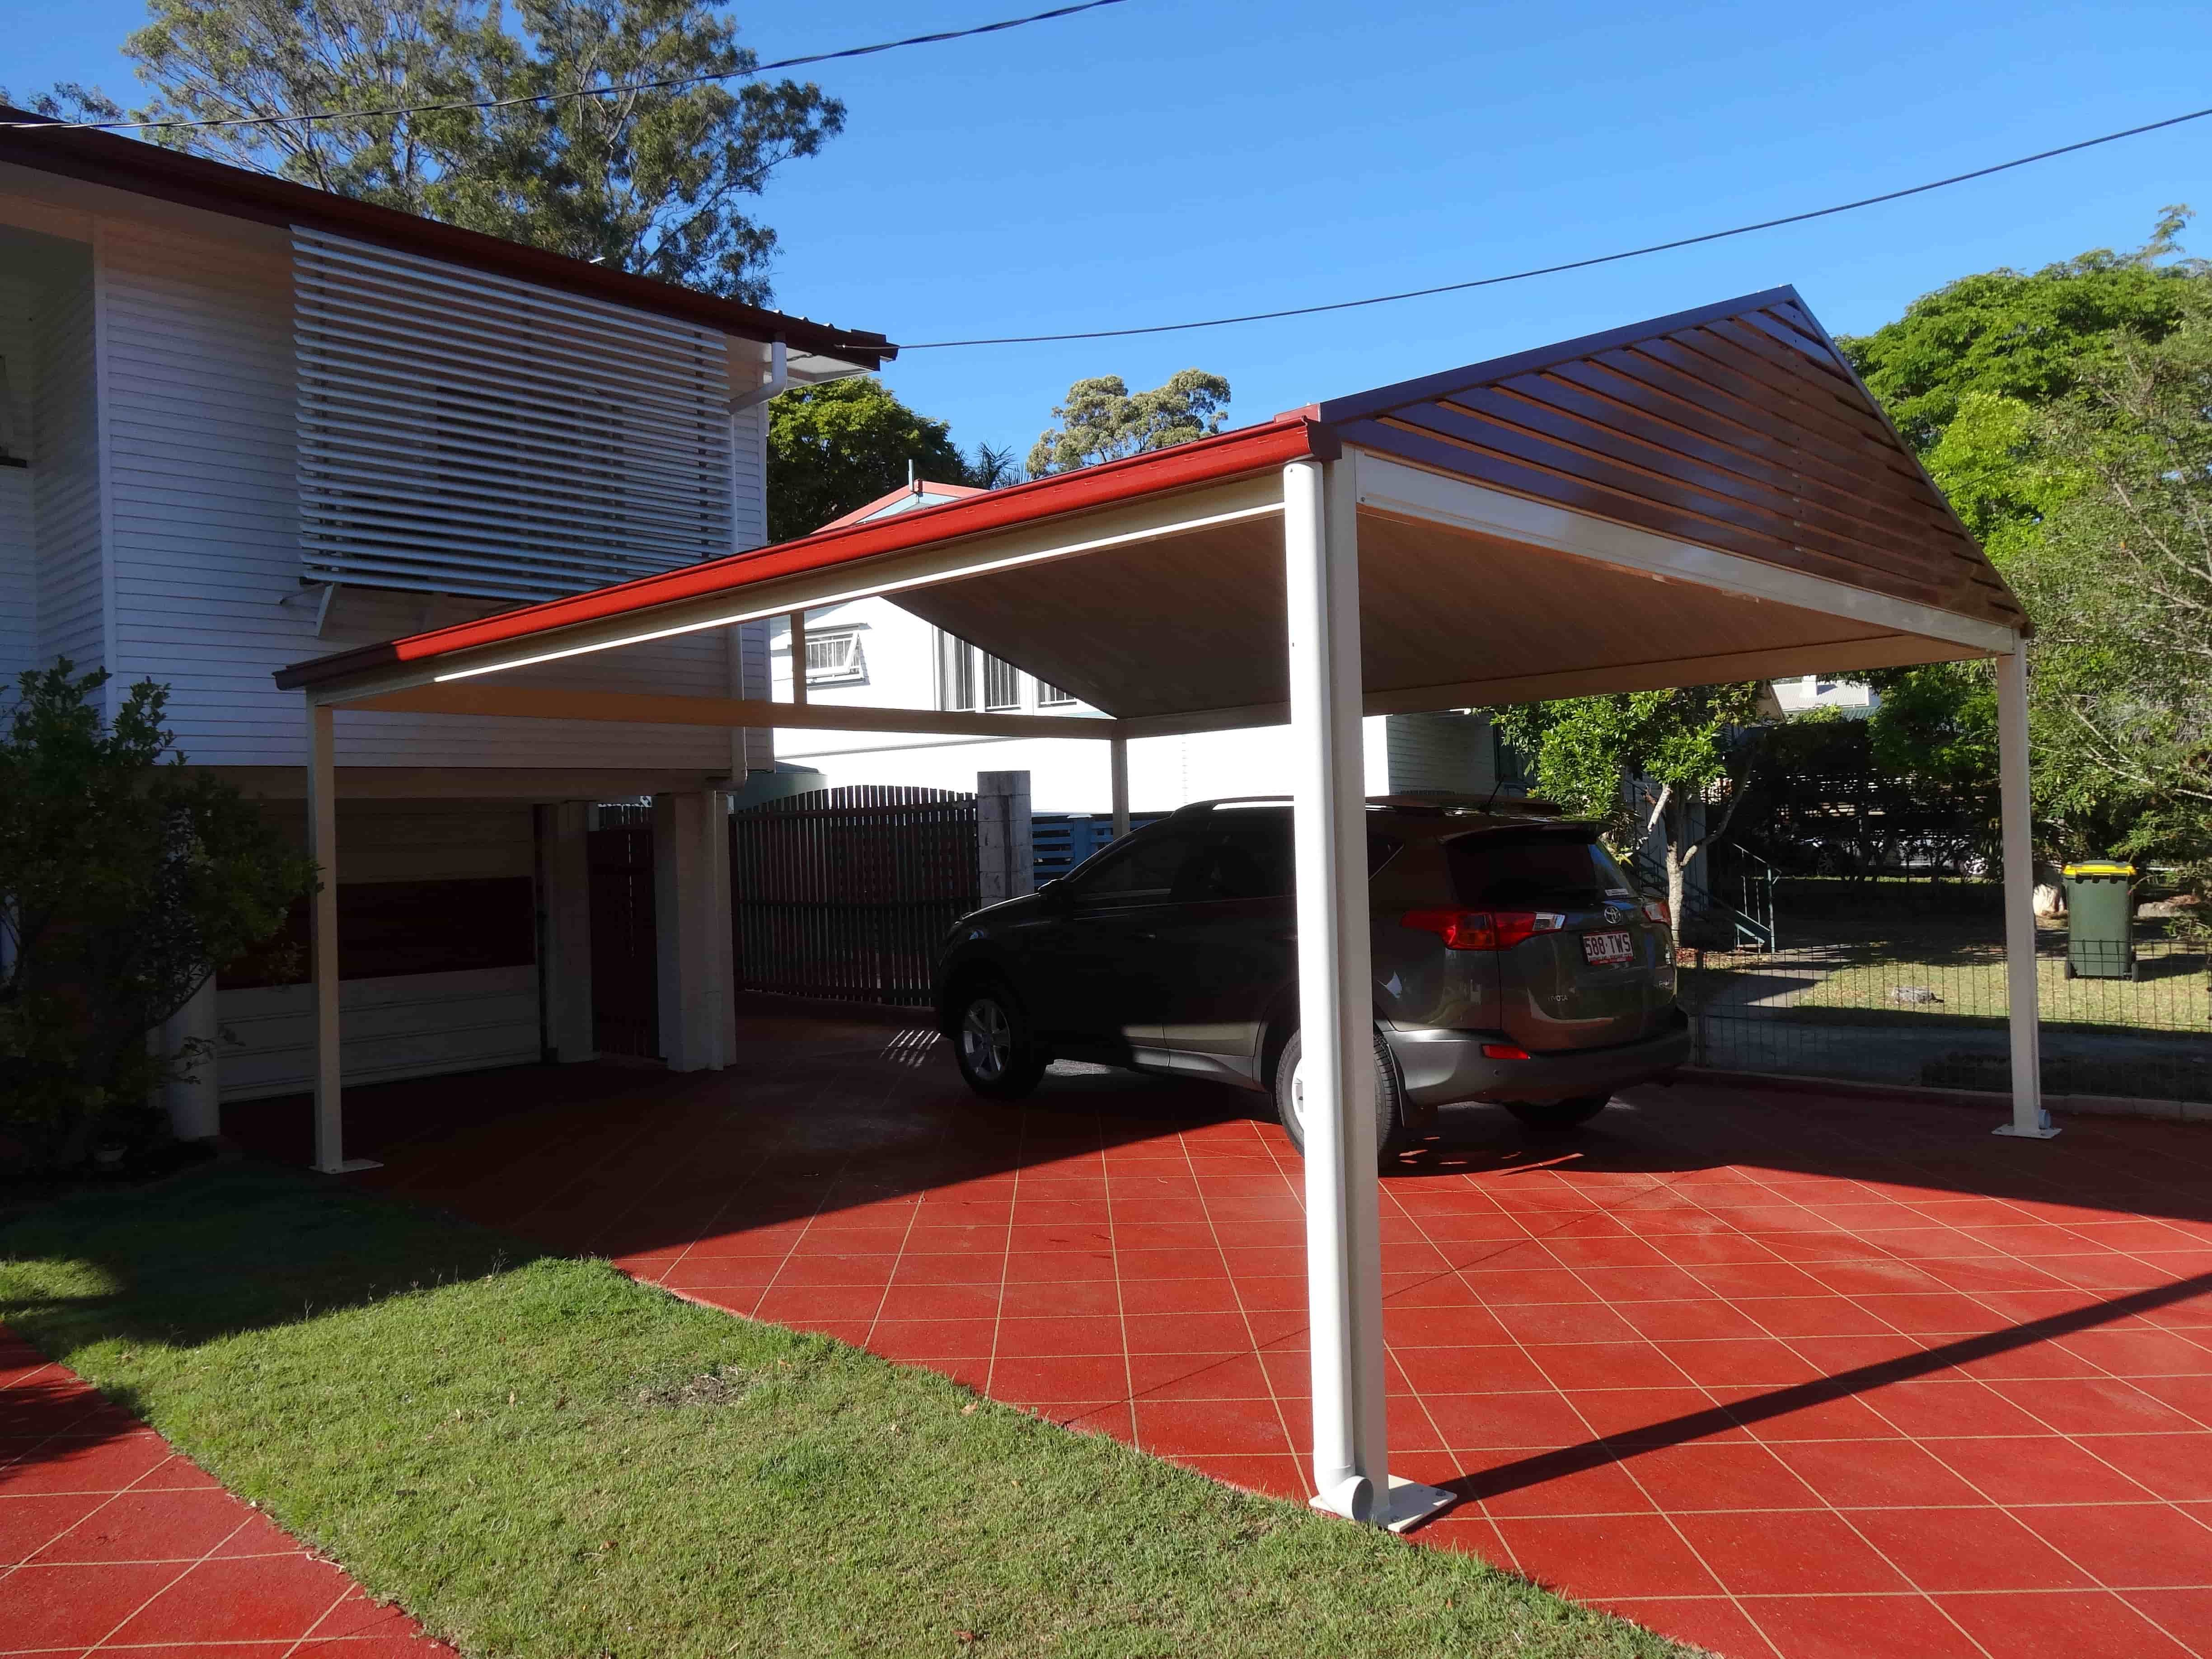 94 Excellent Free Standing Gable Roof Carport